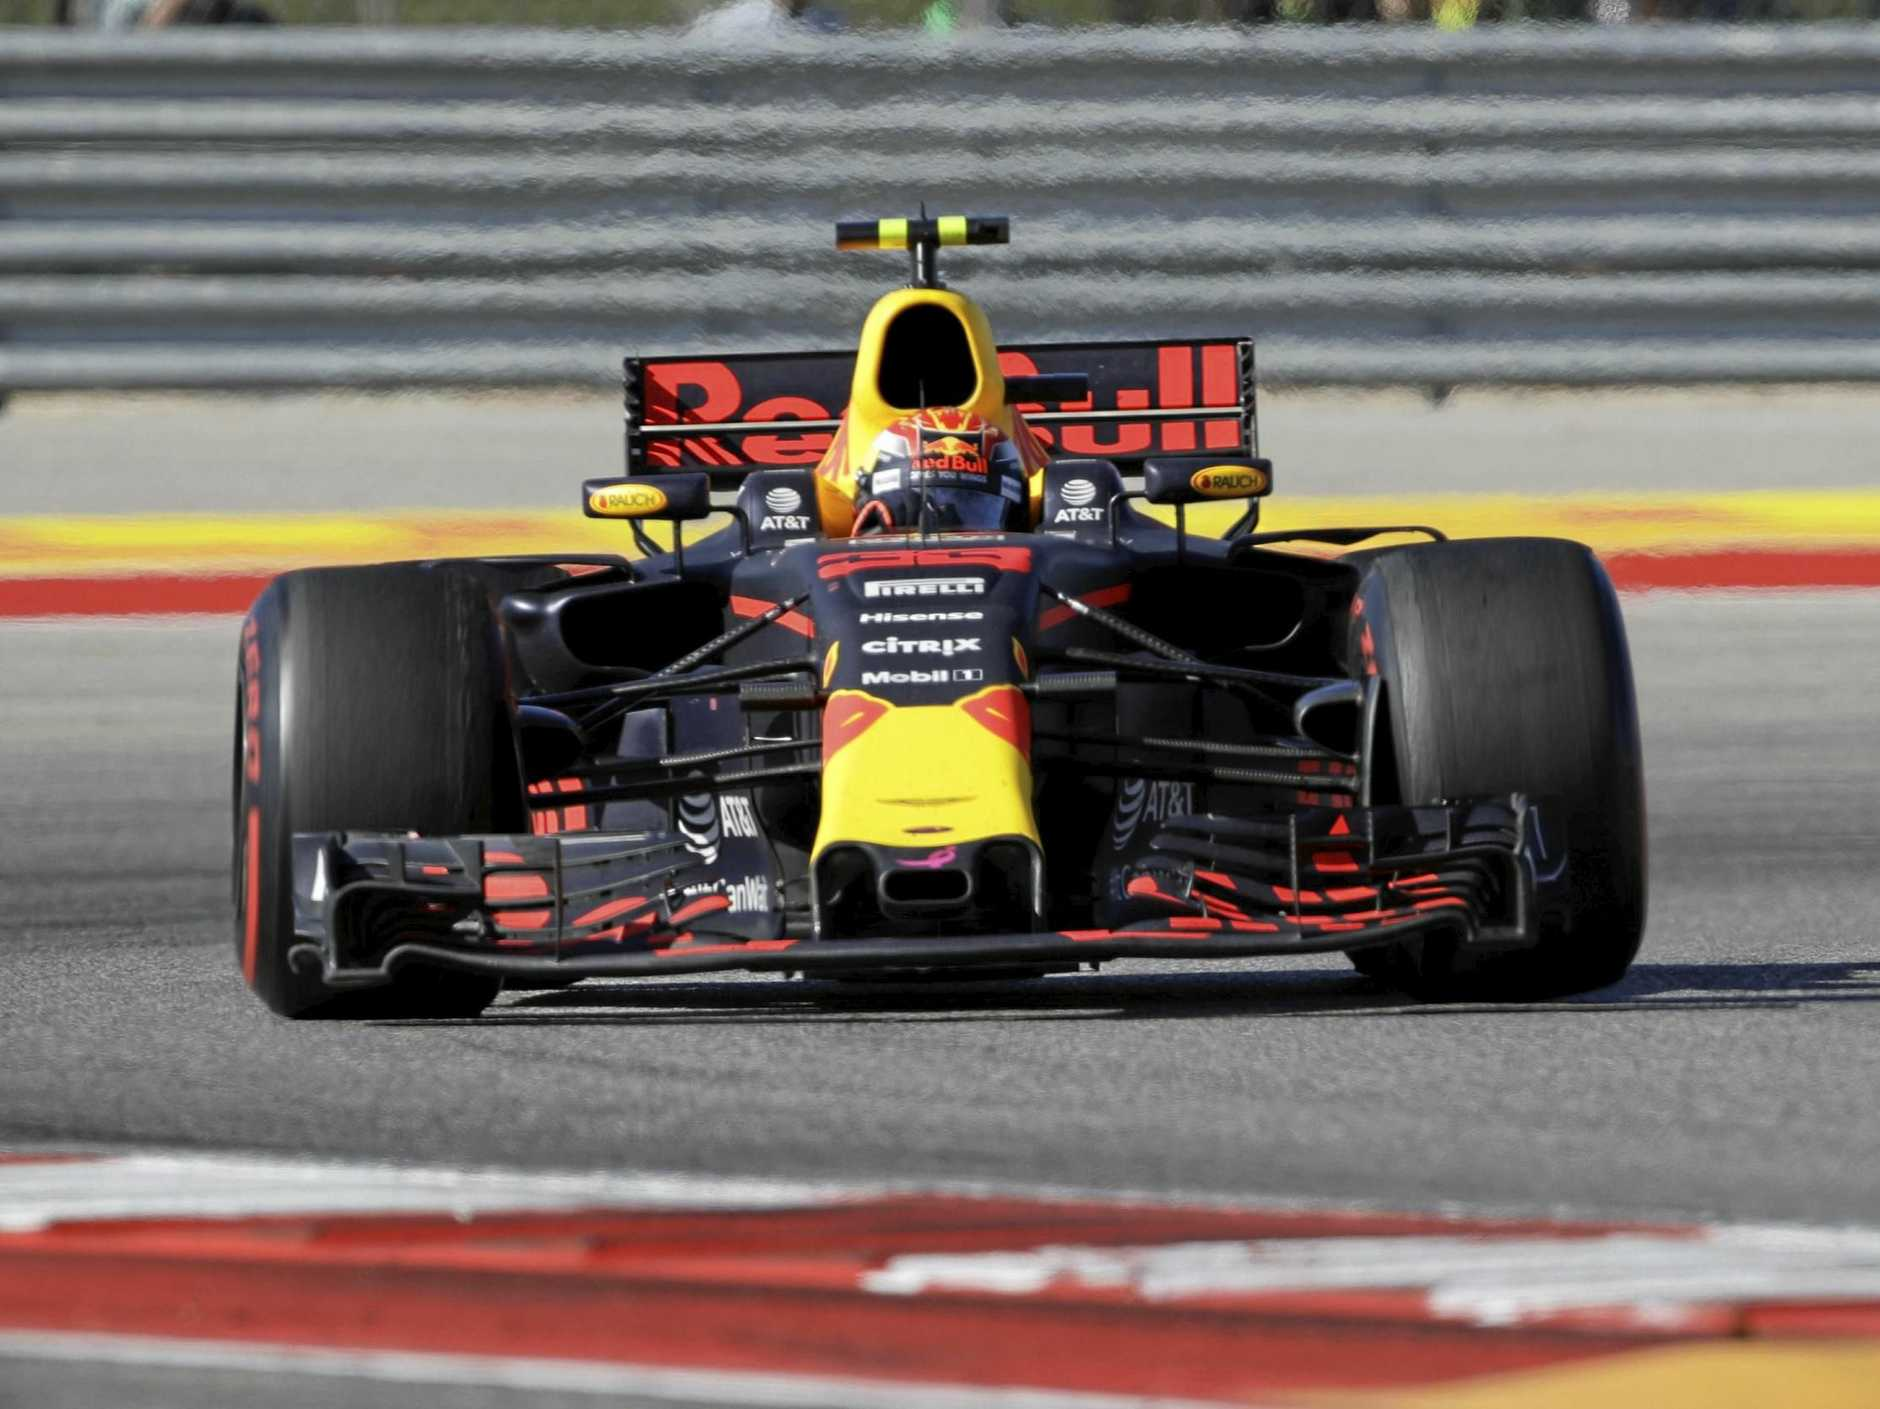 Verstappen (33), of Netherlands, steers through a turn  at the Circuit of the Americas